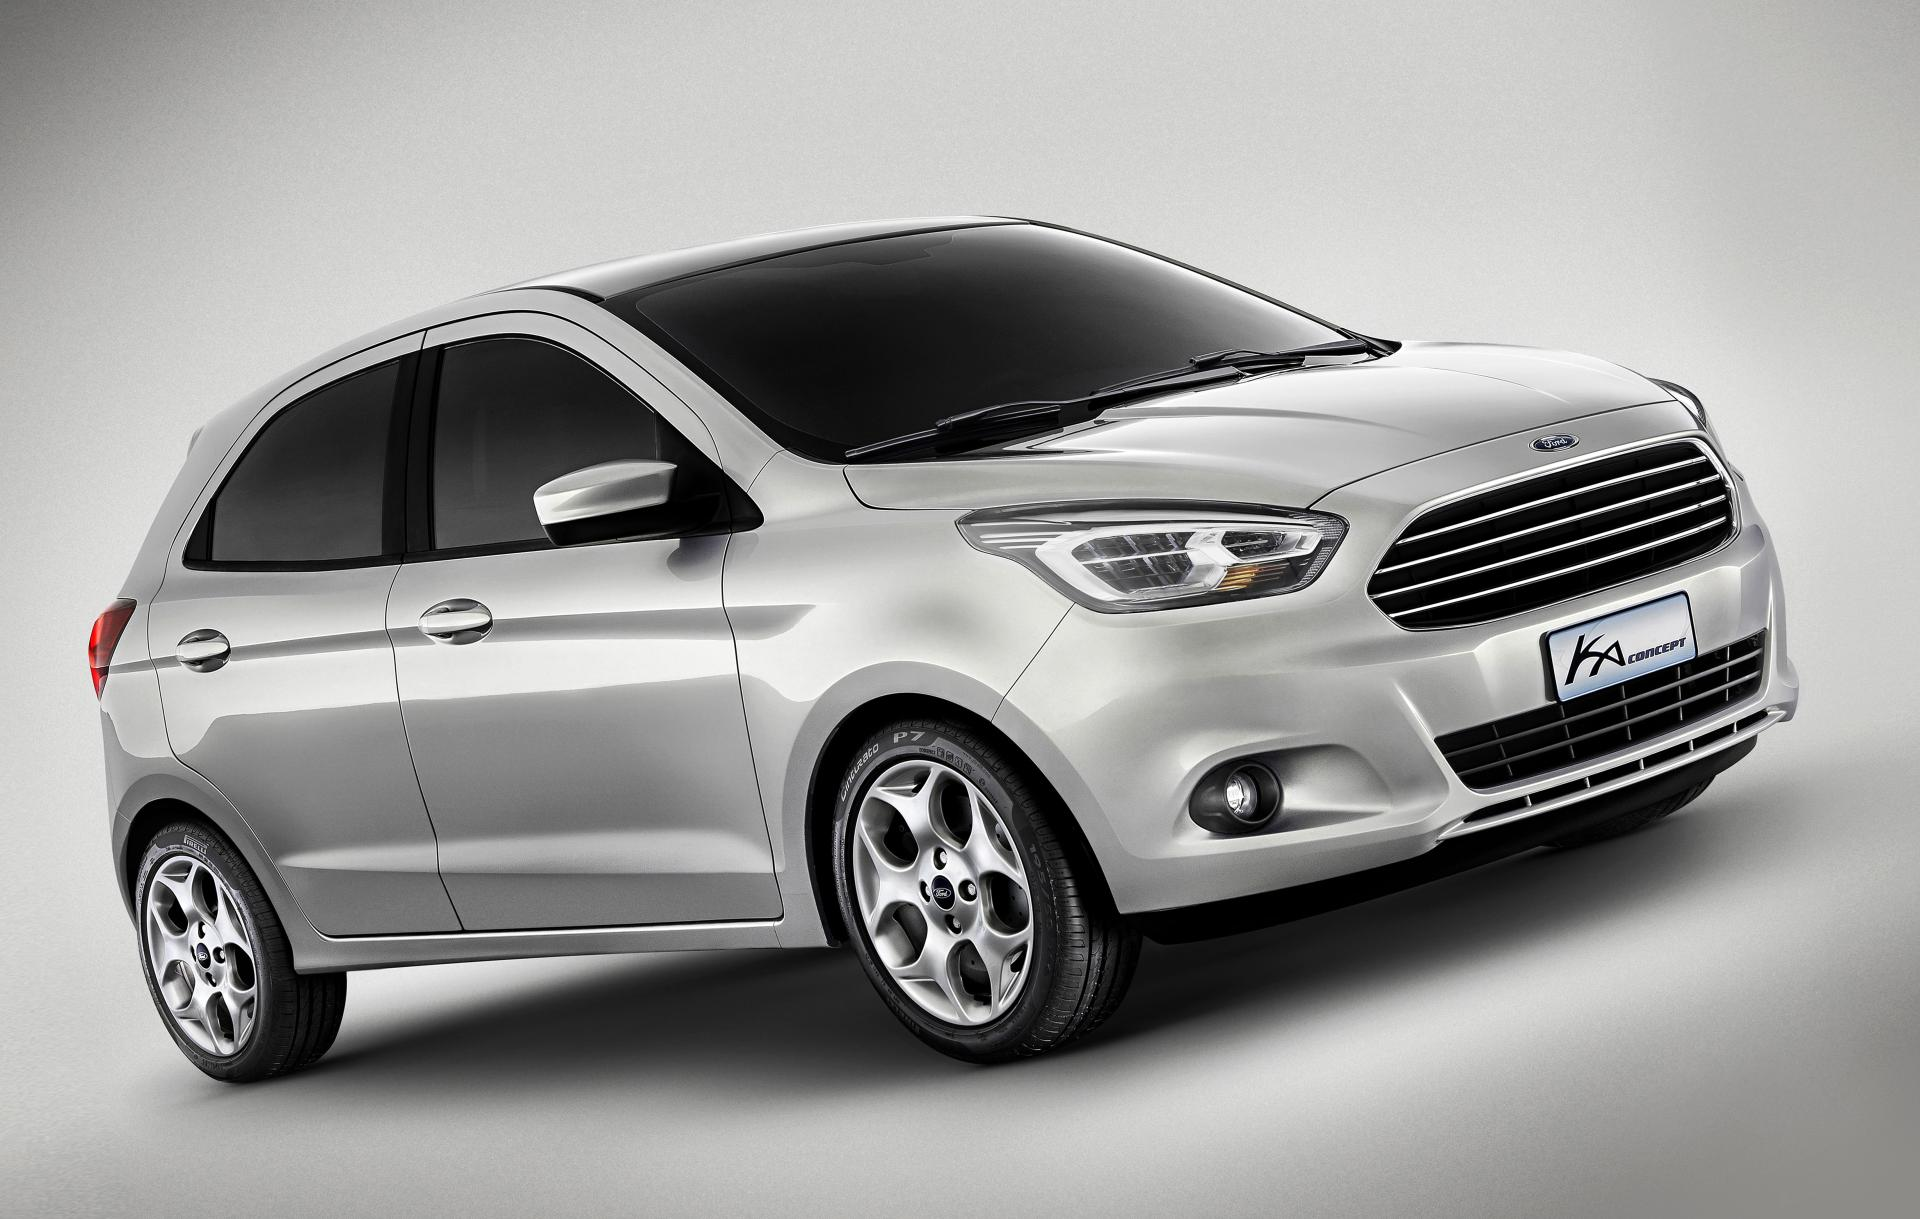 2013 Ford Ka Concept News And Information Research And Pricing